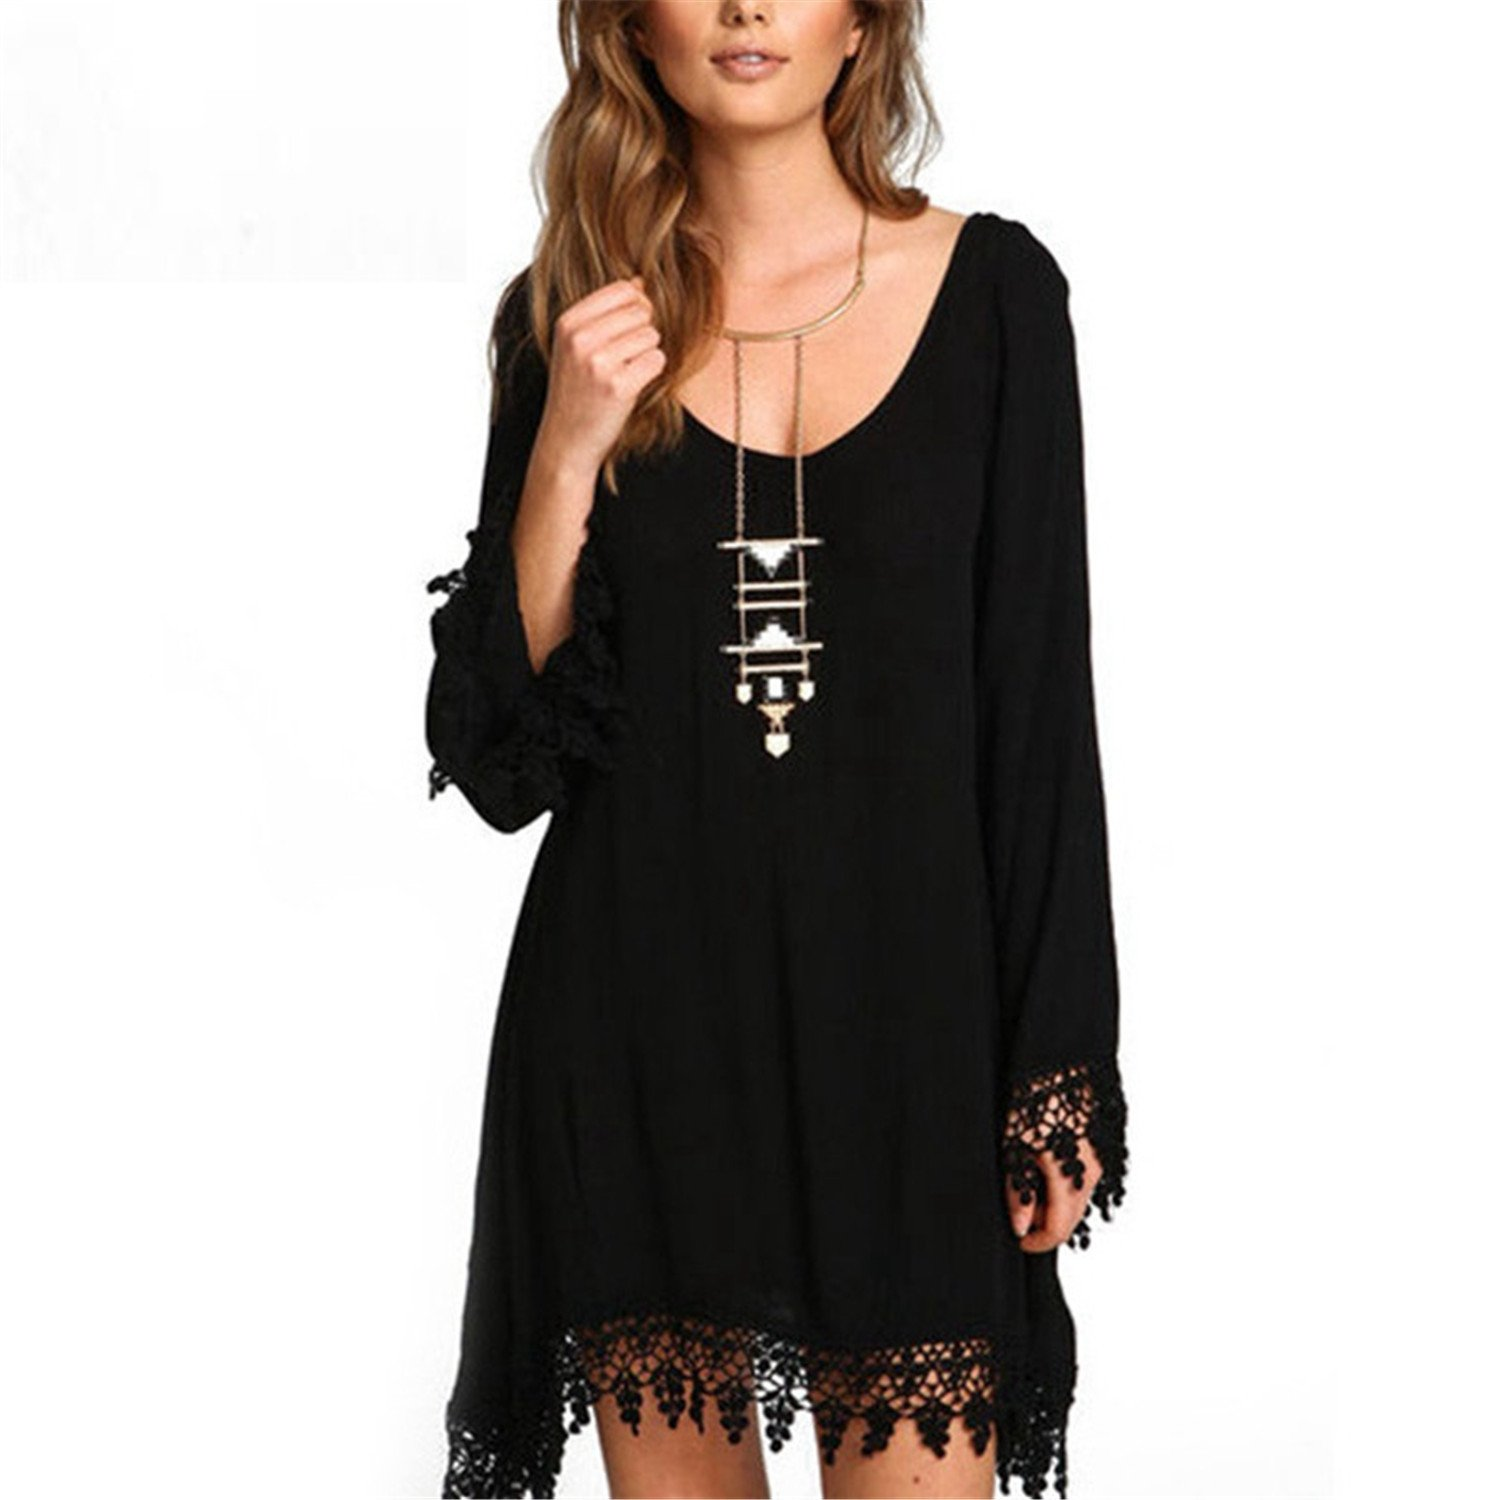 Kateirmaso Women Casual Loose Long Sleeve Black Tassel Party Dress Summer Boho Style O Neck Beach Plus Size 5XL at Amazon Womens Clothing store: